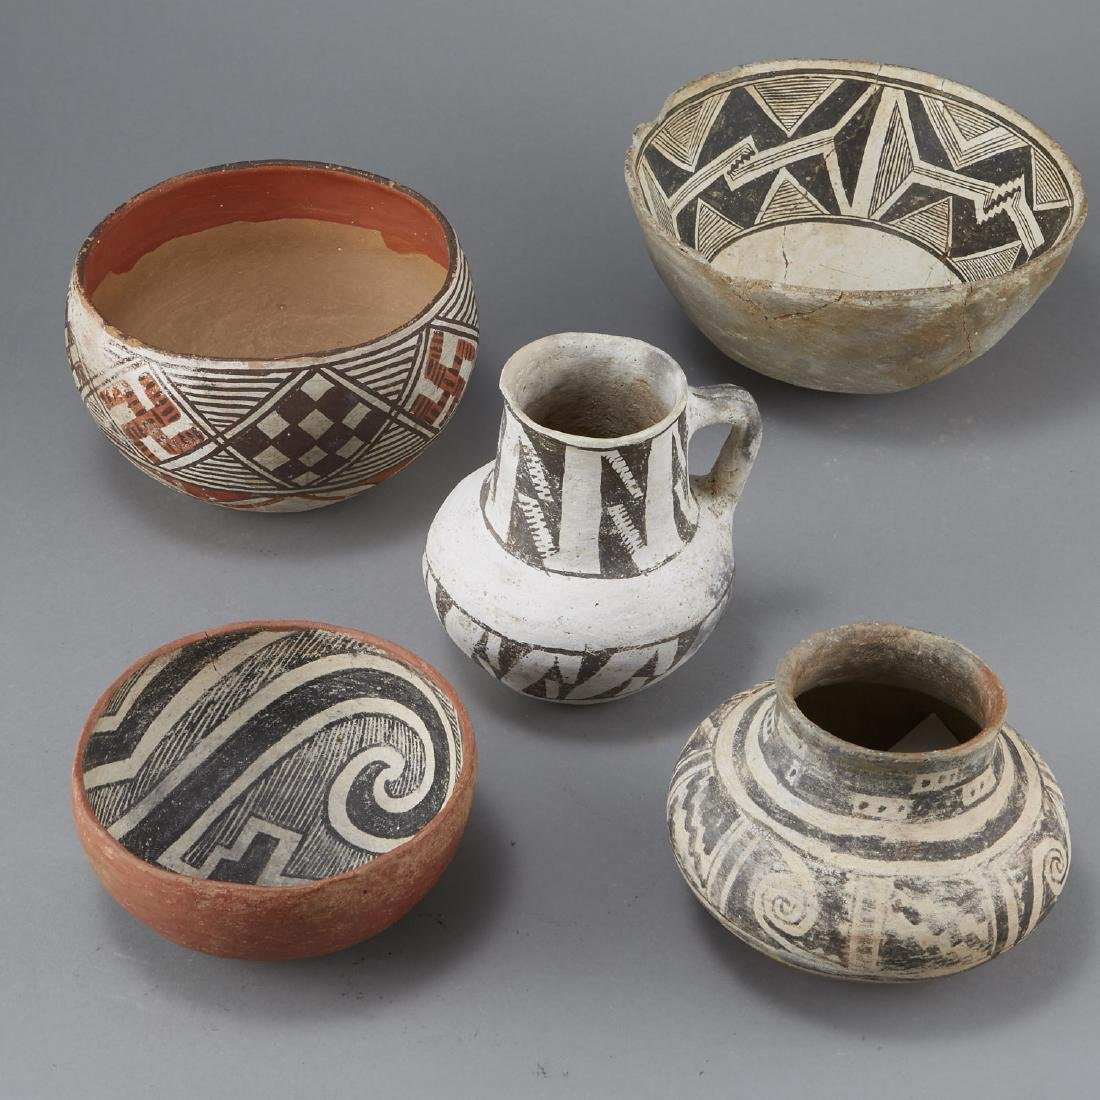 5 Prehistoric Pottery Pieces